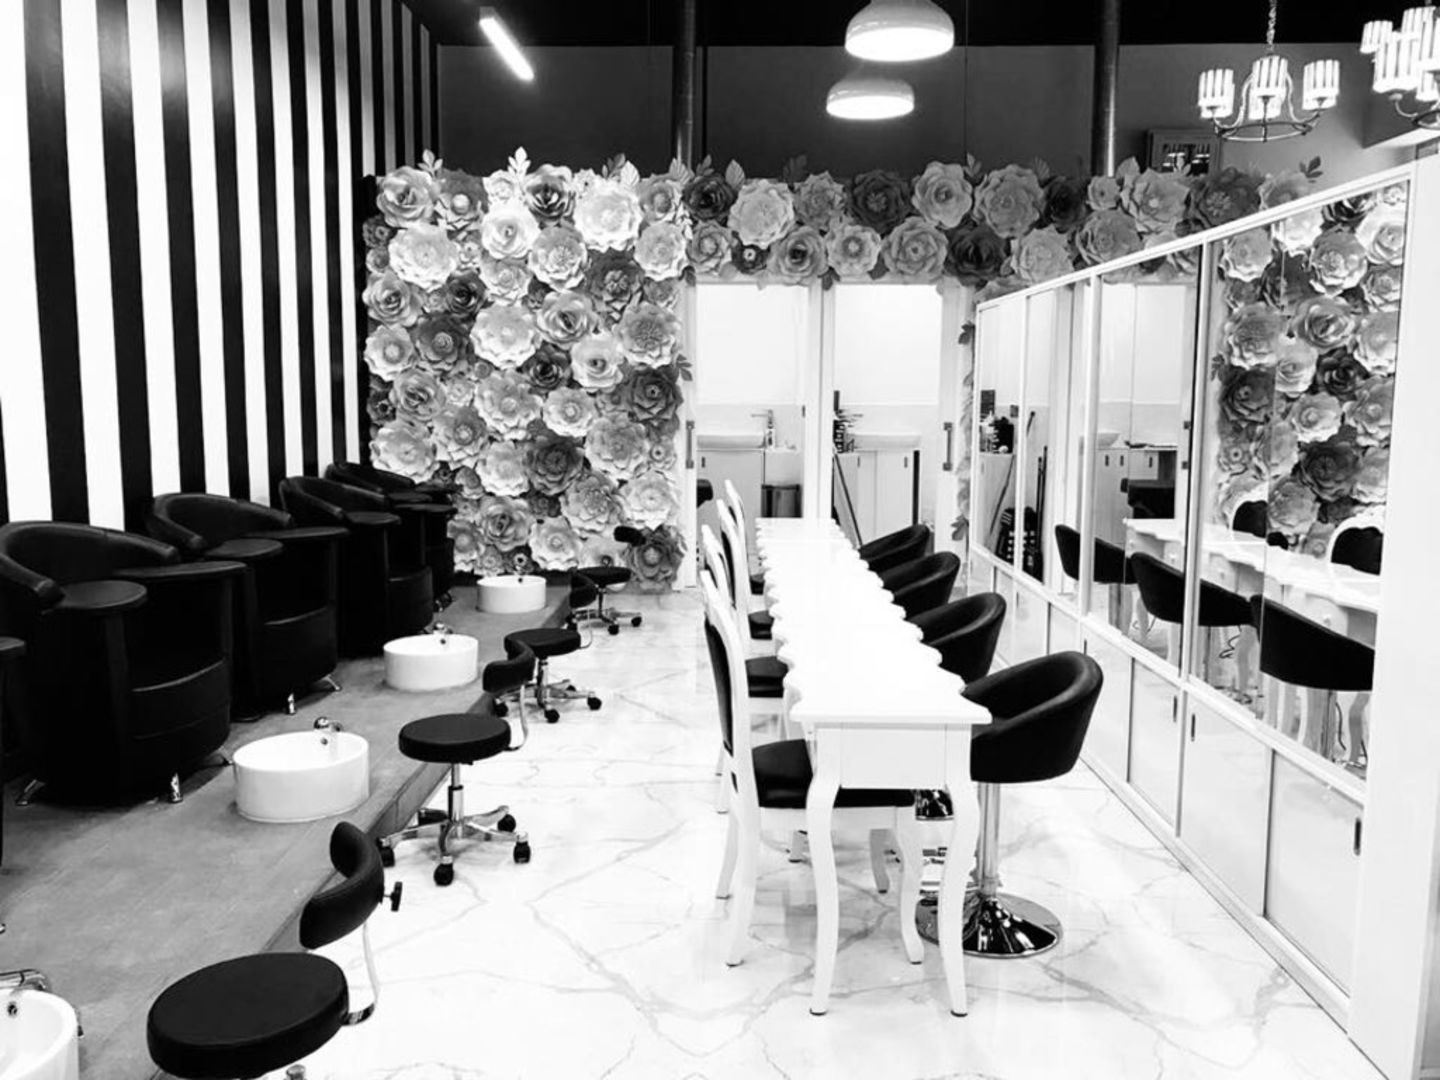 HiDubai-business-nail-atelier-salon-beauty-wellness-health-beauty-salons-jumeirah-3-dubai